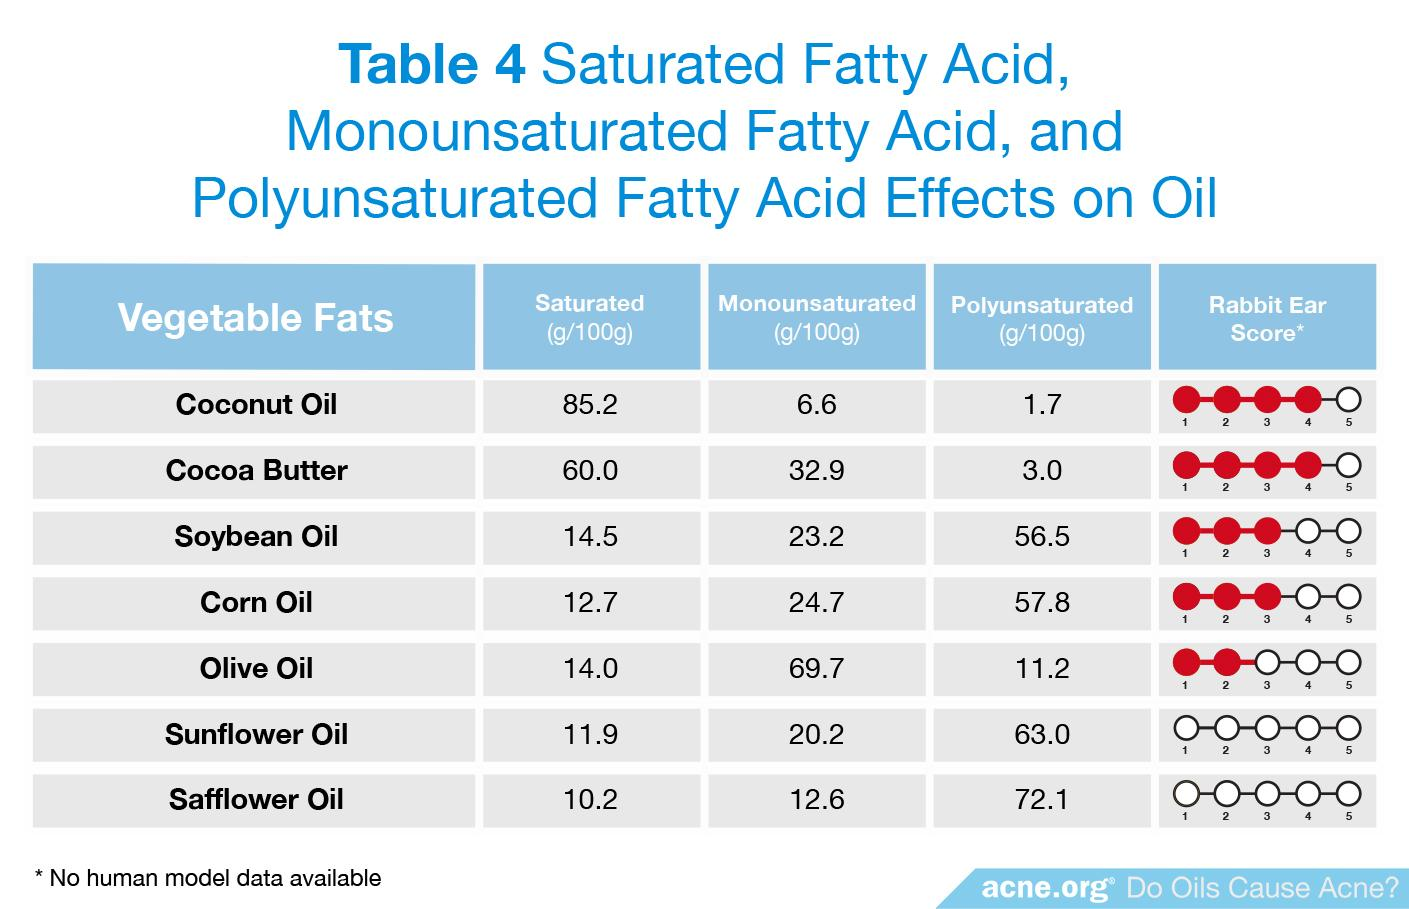 Saturated Fatty Acid, Monounsaturated Fatty Acid, and Polyunsaturated Fatty Acid Effects on Oil